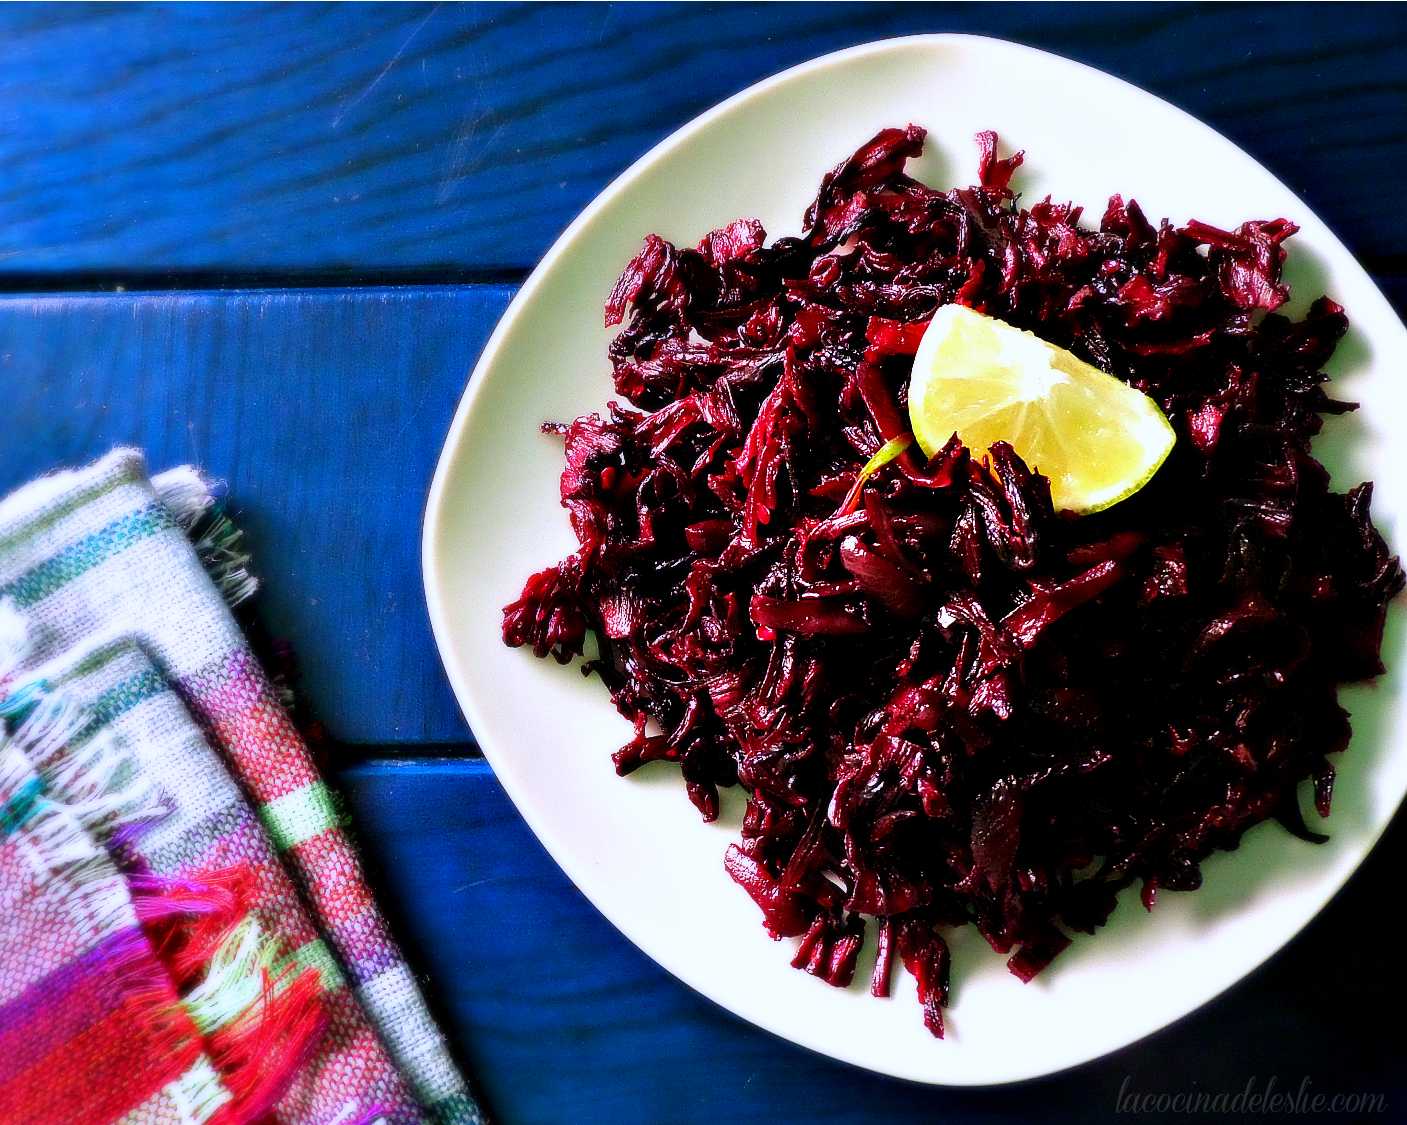 Rehydrated Hibiscus Flowers - lacocinadeleslie.com